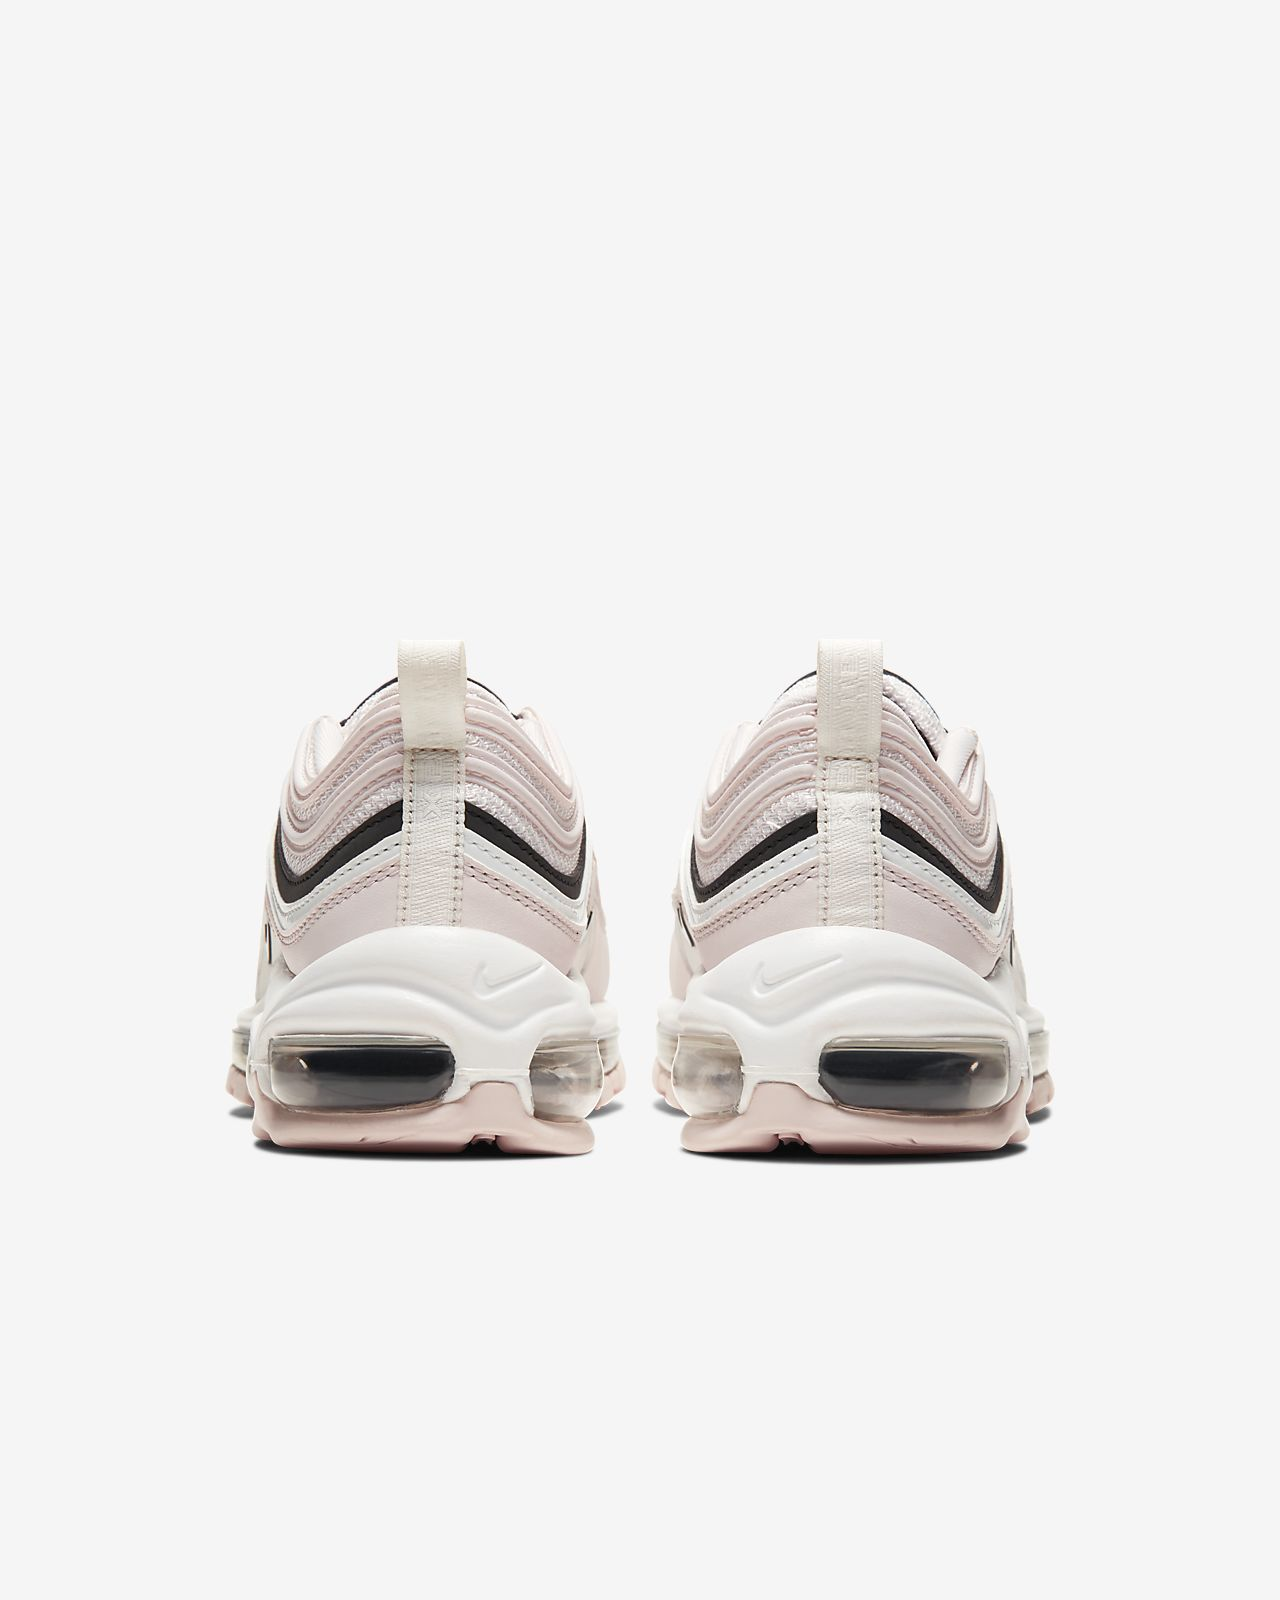 Nike Women's Nike Air Max 97 Shoes, Size: 9.0, Light Pink from DICKS Sporting Goods | Real Simple